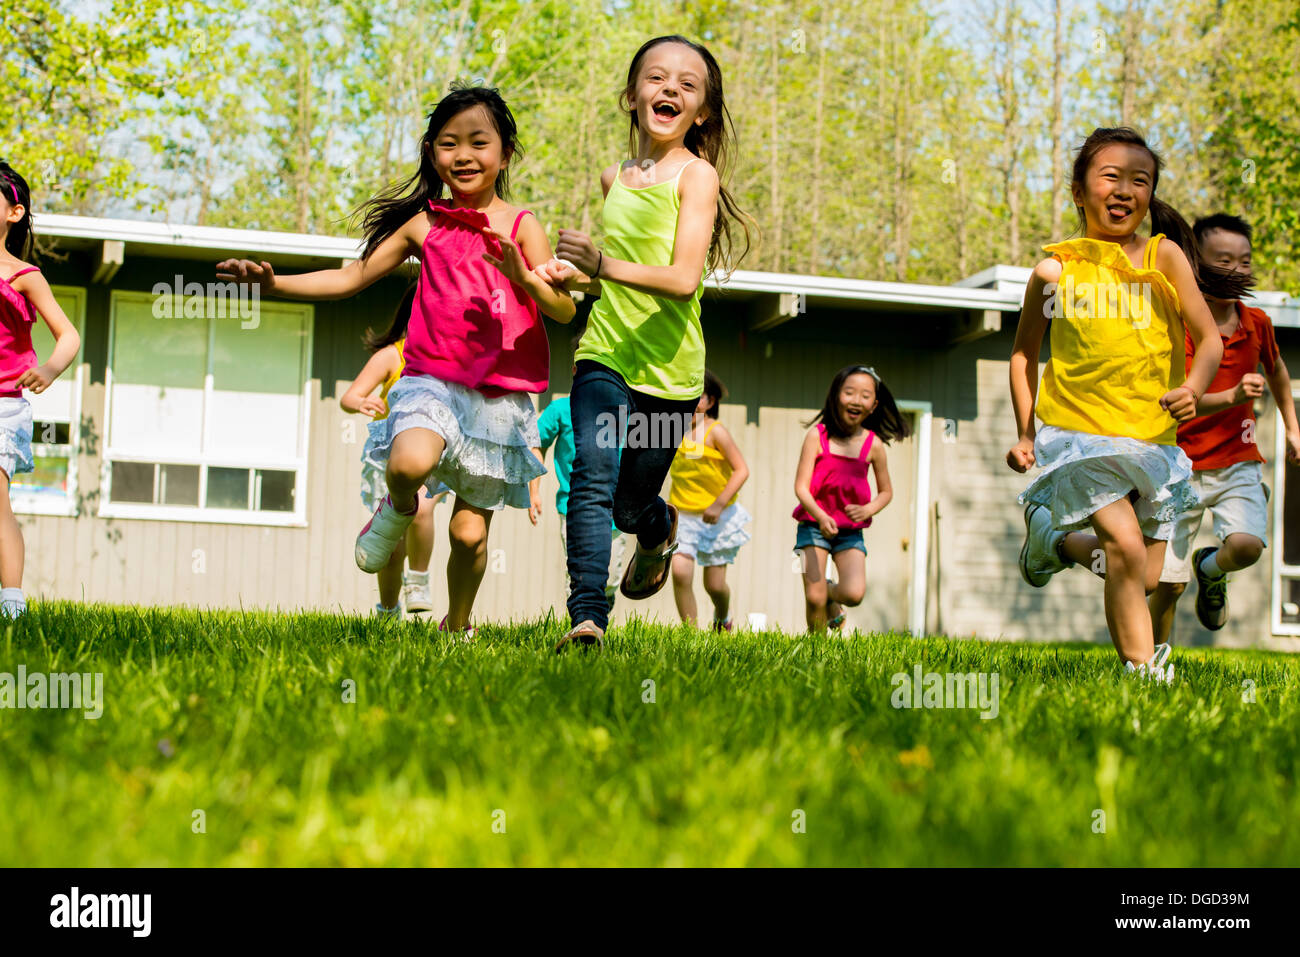 Children running on grass - Stock Image